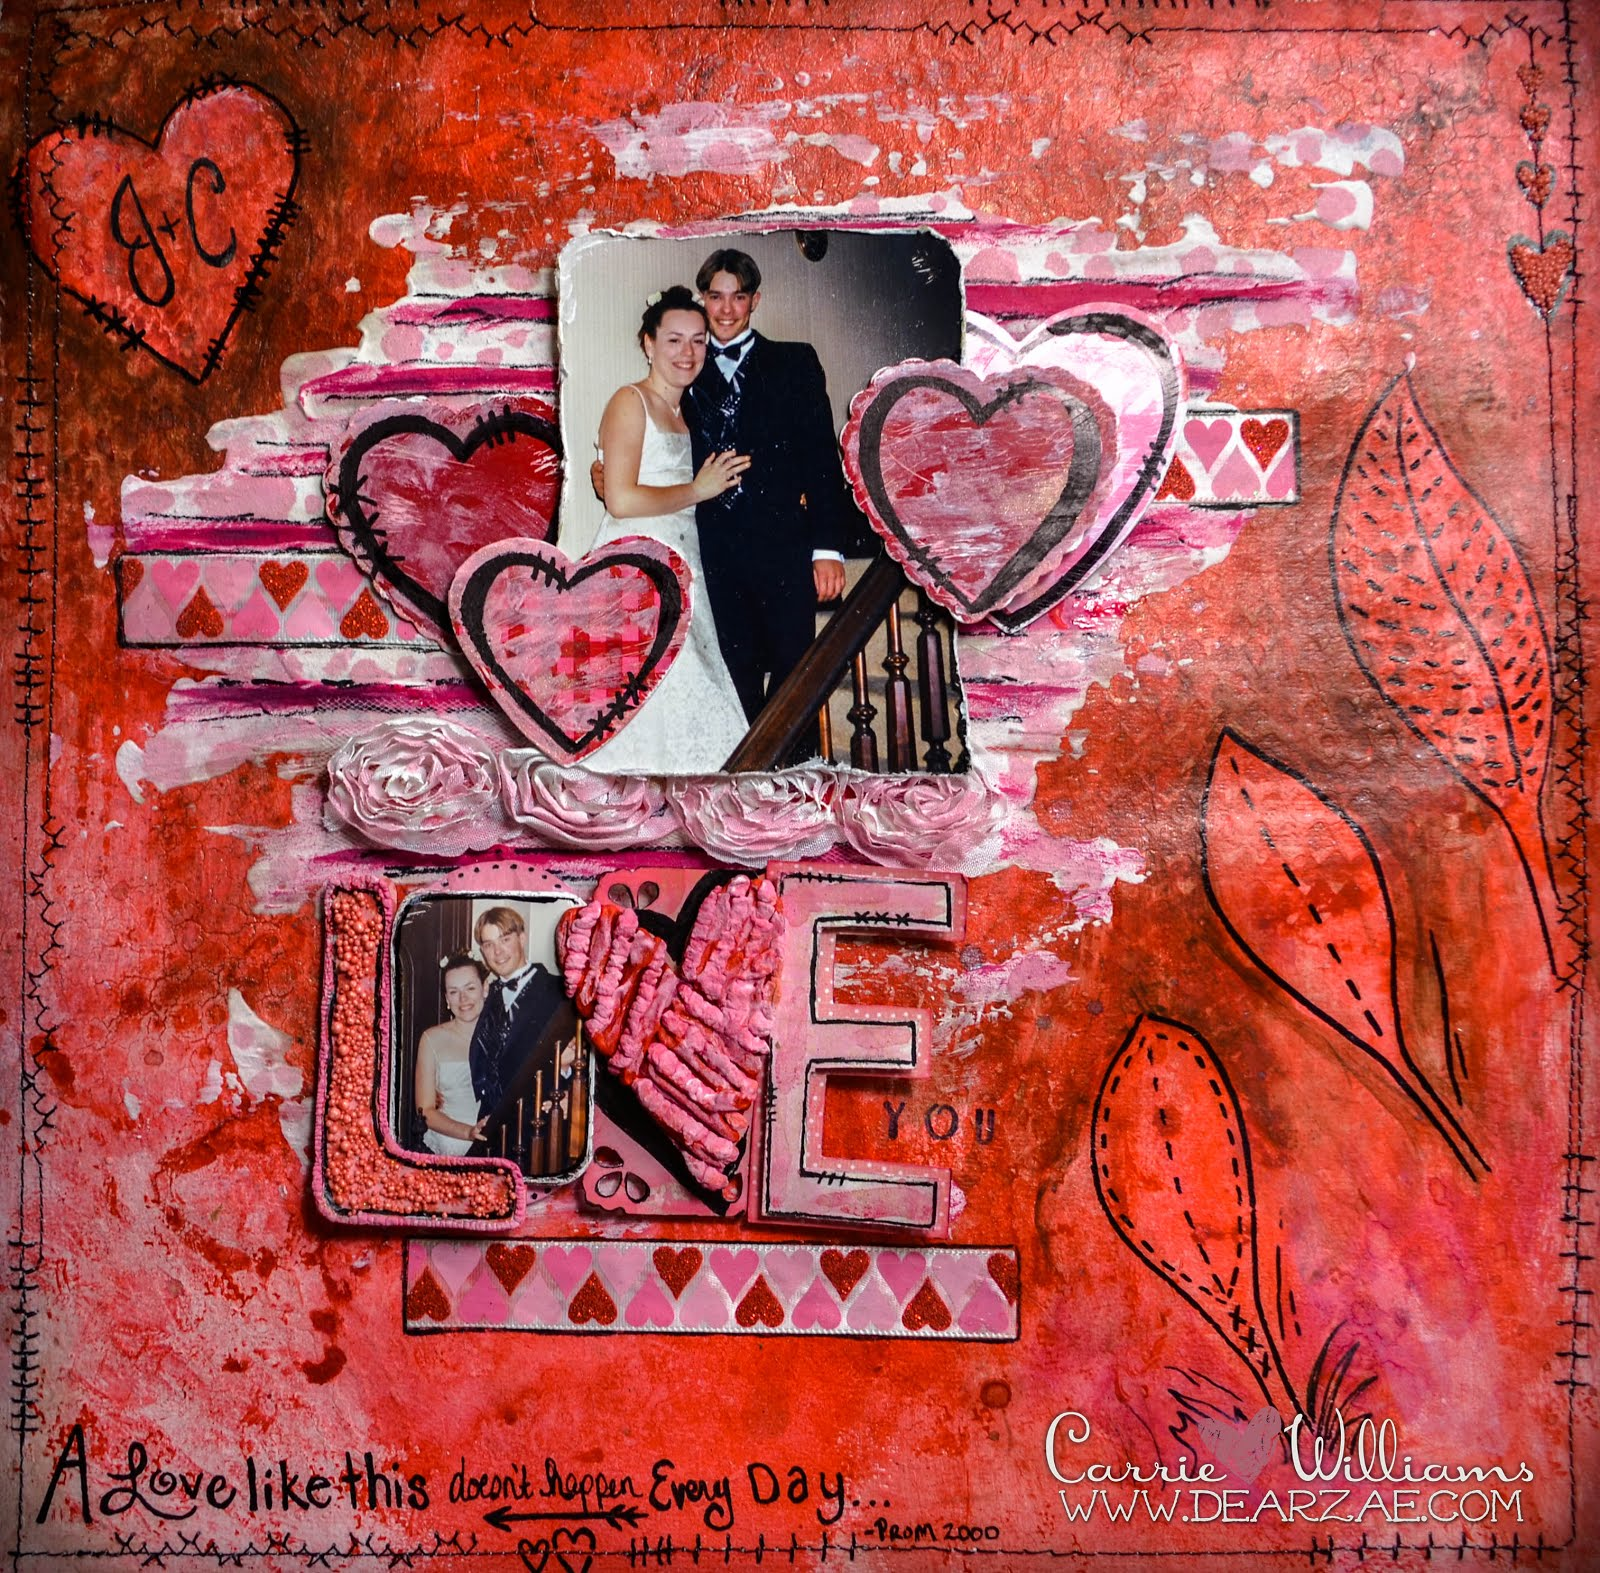 A mixed media Valentines Day love scrapbook layout page with doodling, heart ribbon, rosettes, texture paste, prills, and hearts in red and pink with black stitching.